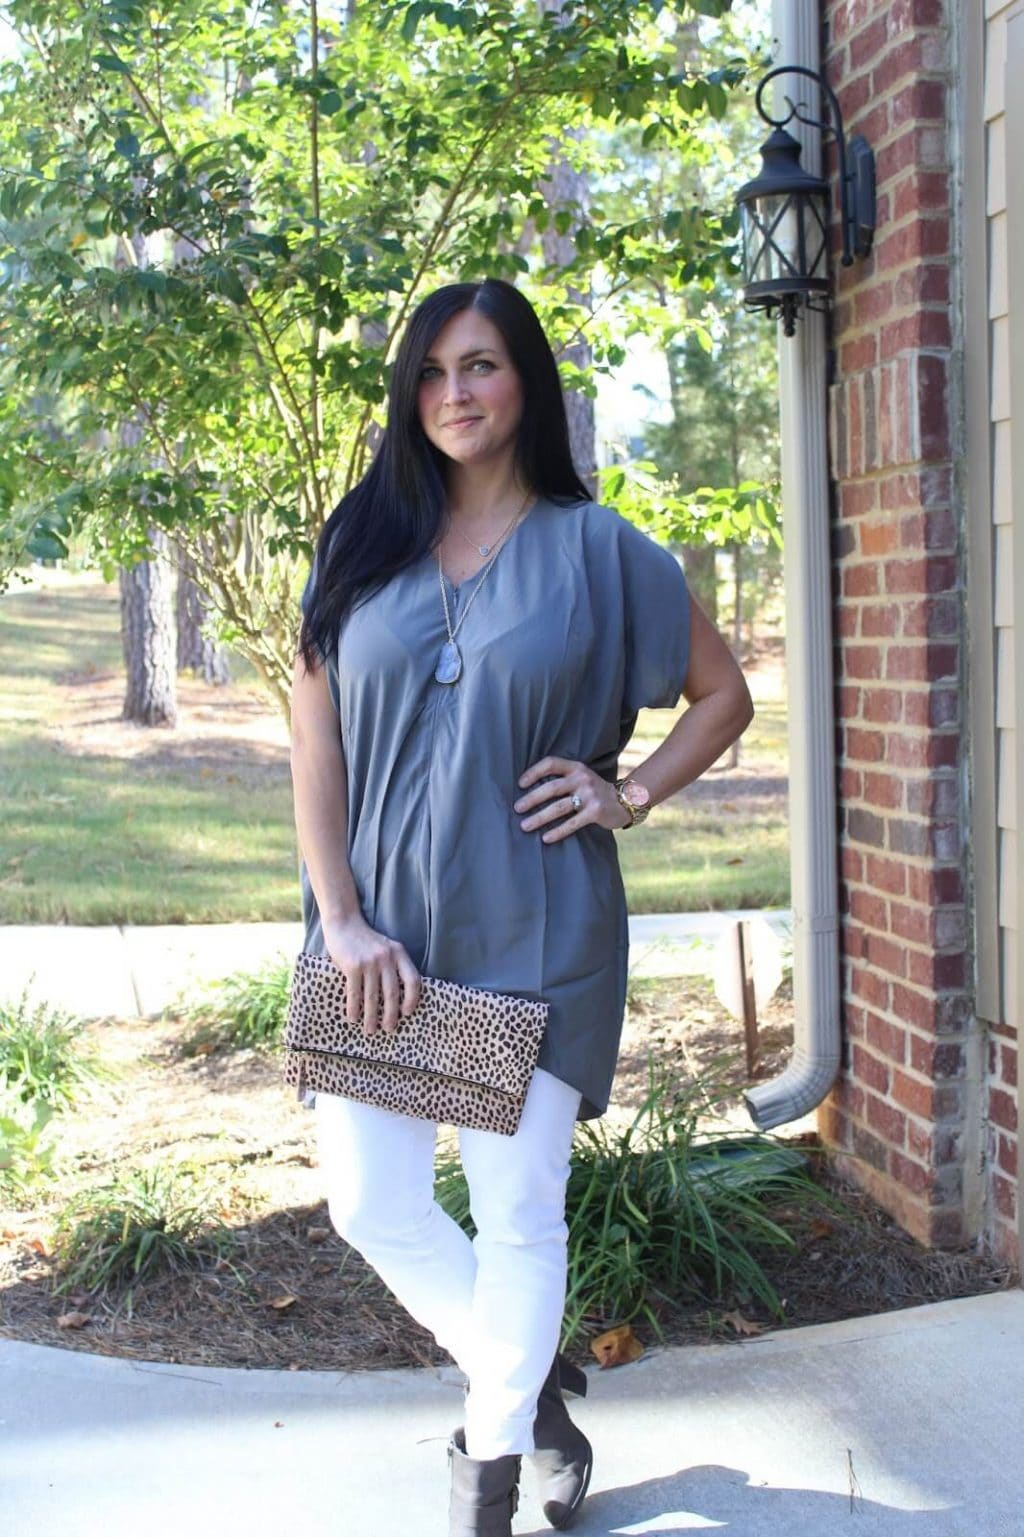 White jeans, grey tunic, leopard folder clutch, nursing friendly